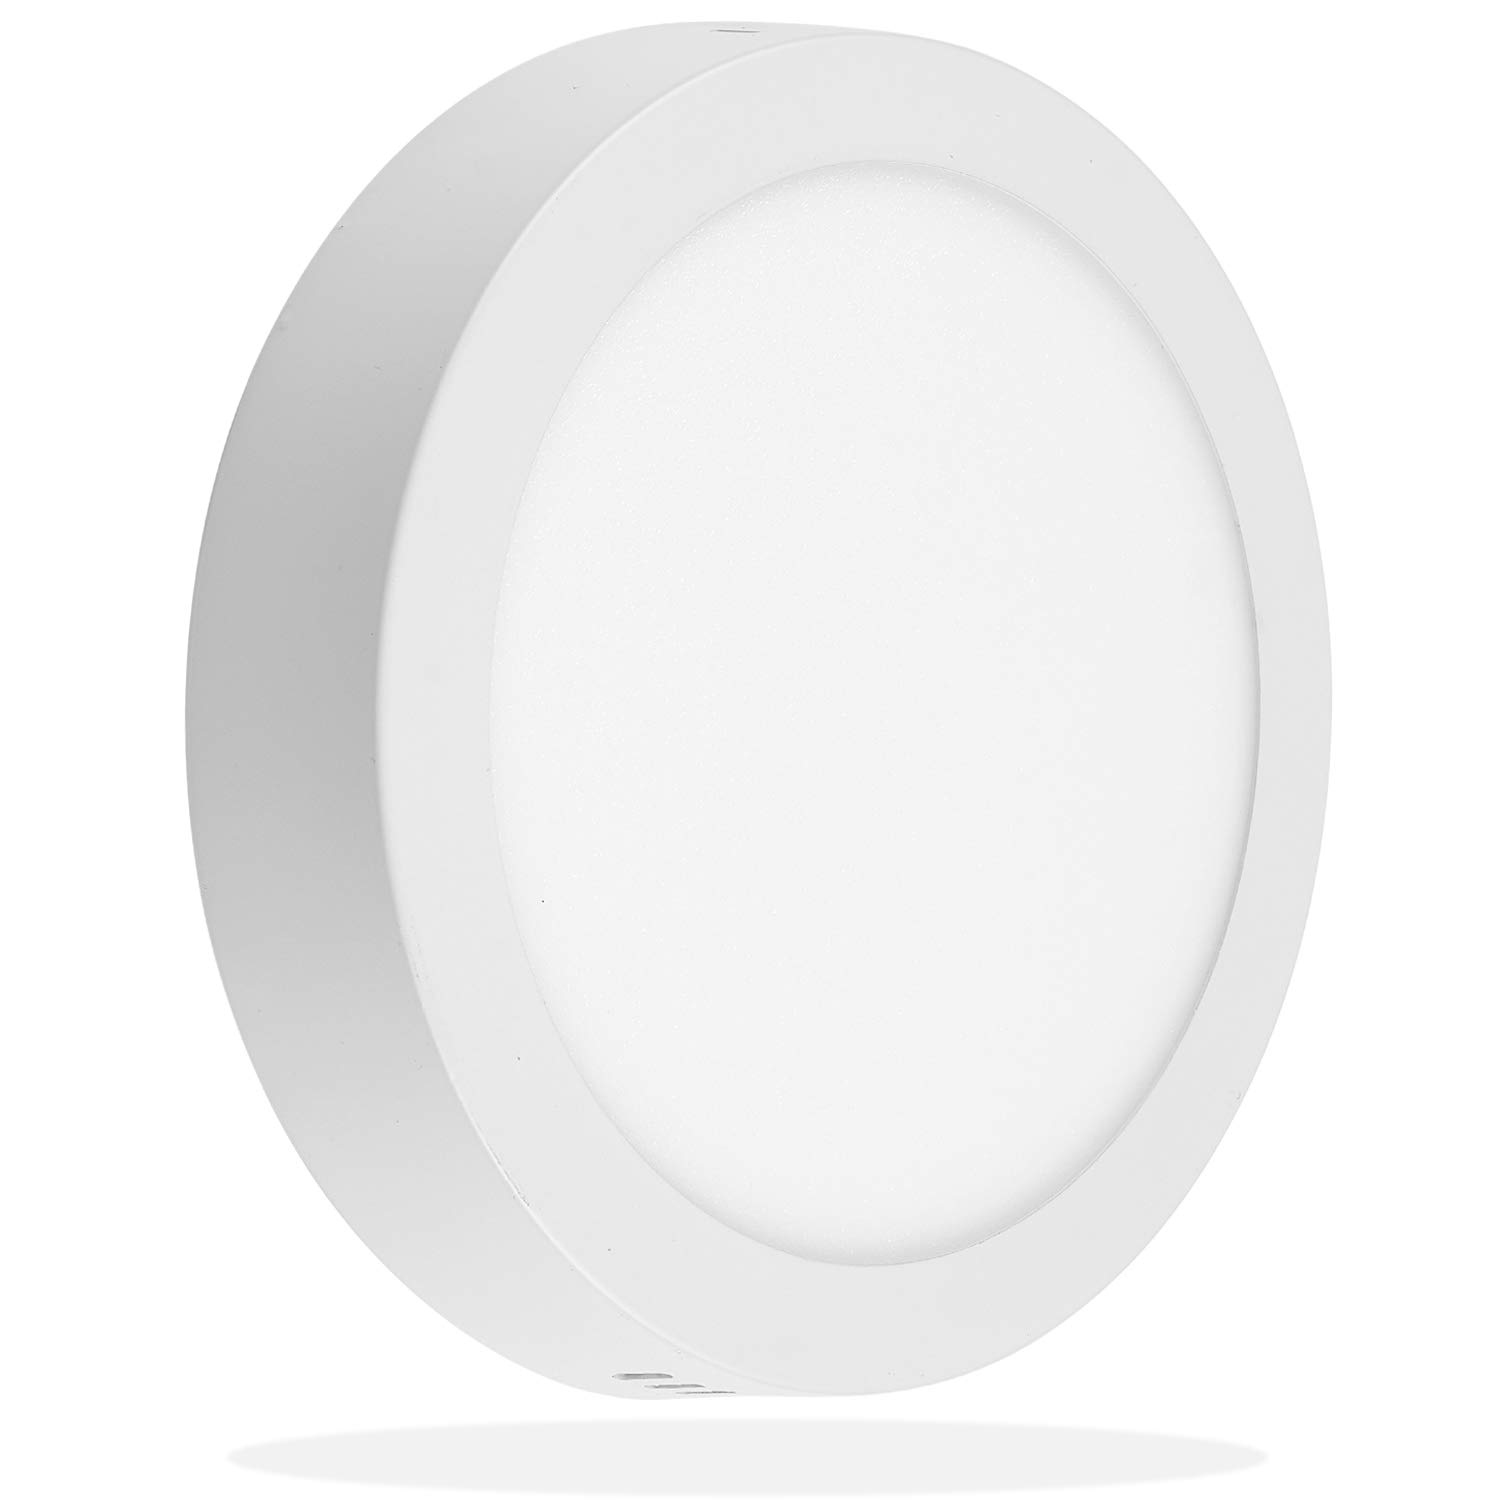 LEEKI 8.5 inch 18W LED Panel Wall Ceiling Down Light - Round - Cool White 5000K - Non-Dimmable